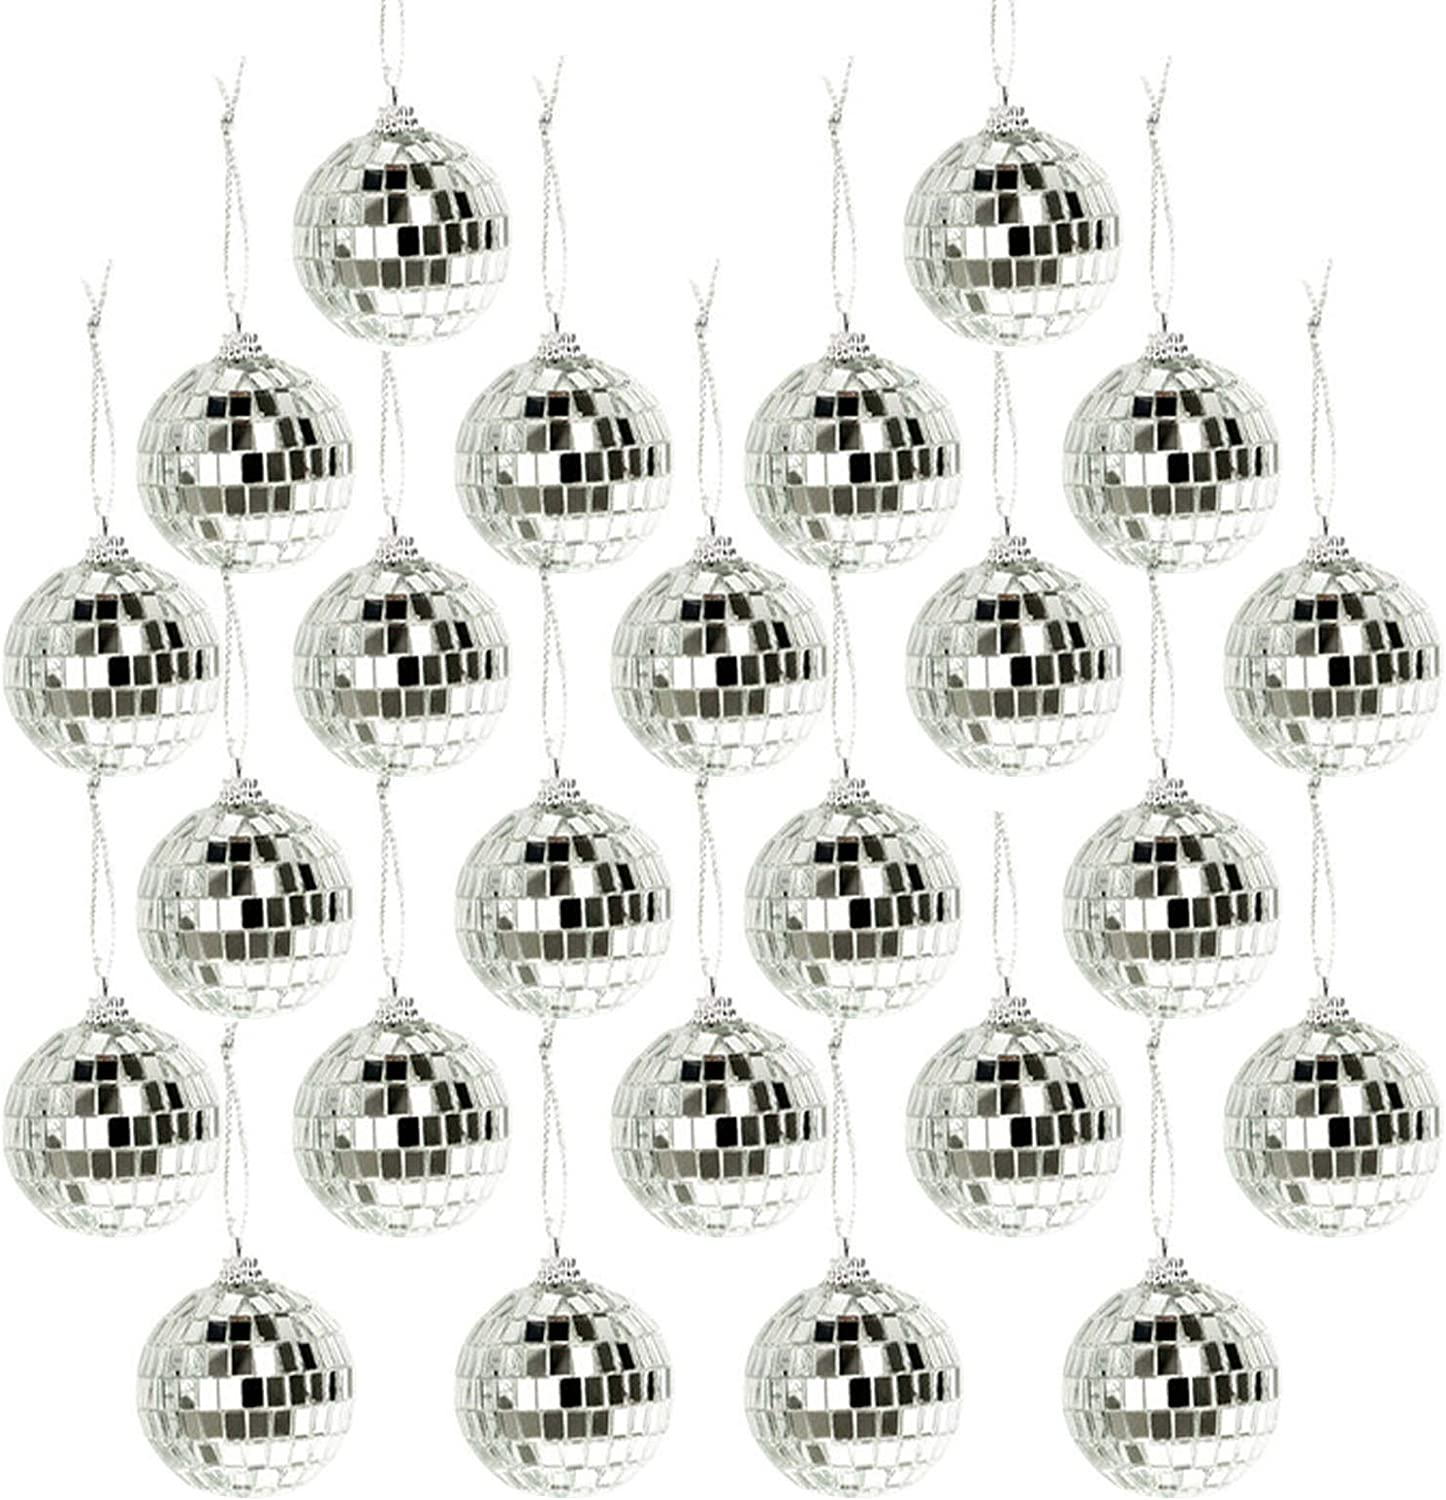 24 Pcs Christmas Ball Ornament, Bright Reflective Mirror Disco Balls, Shatterproof Christmas Tree Hanging Baubles, Reusable Seasonal Decor for Xmas, Holiday, Music Festivals and Party (2 in, Silver)